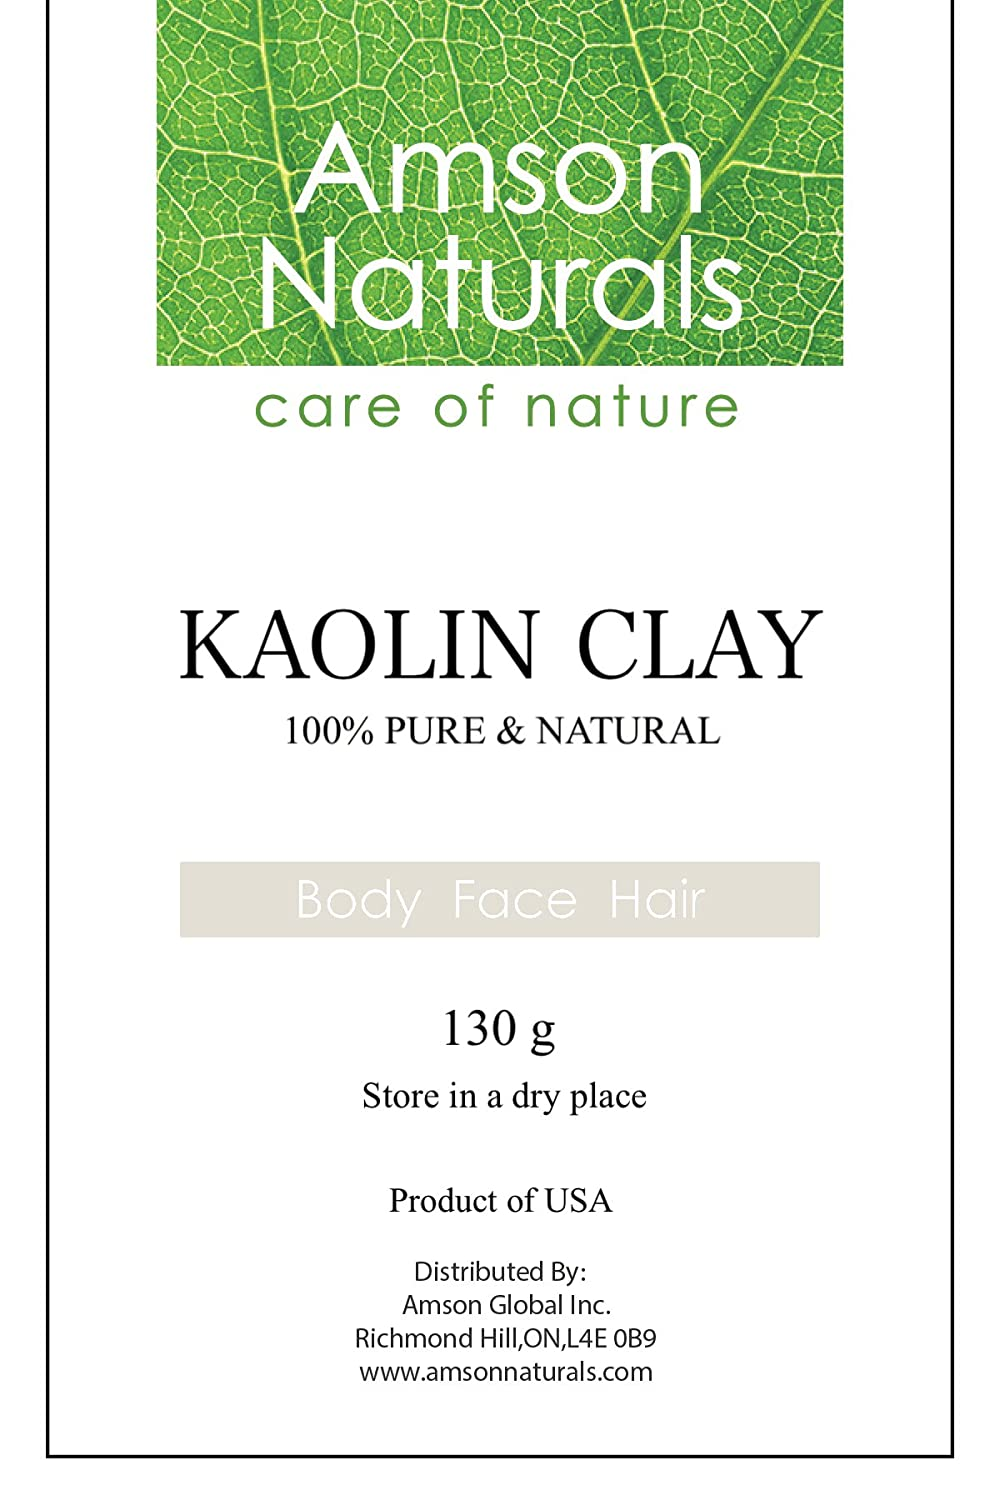 KAOLIN CLAY -120g-by Amson Naturals-100% Pure & Natural – Excellent for Facial Mask, Body Scrubs, Lotions, Creams, Hair Care Products and DIY recipes.